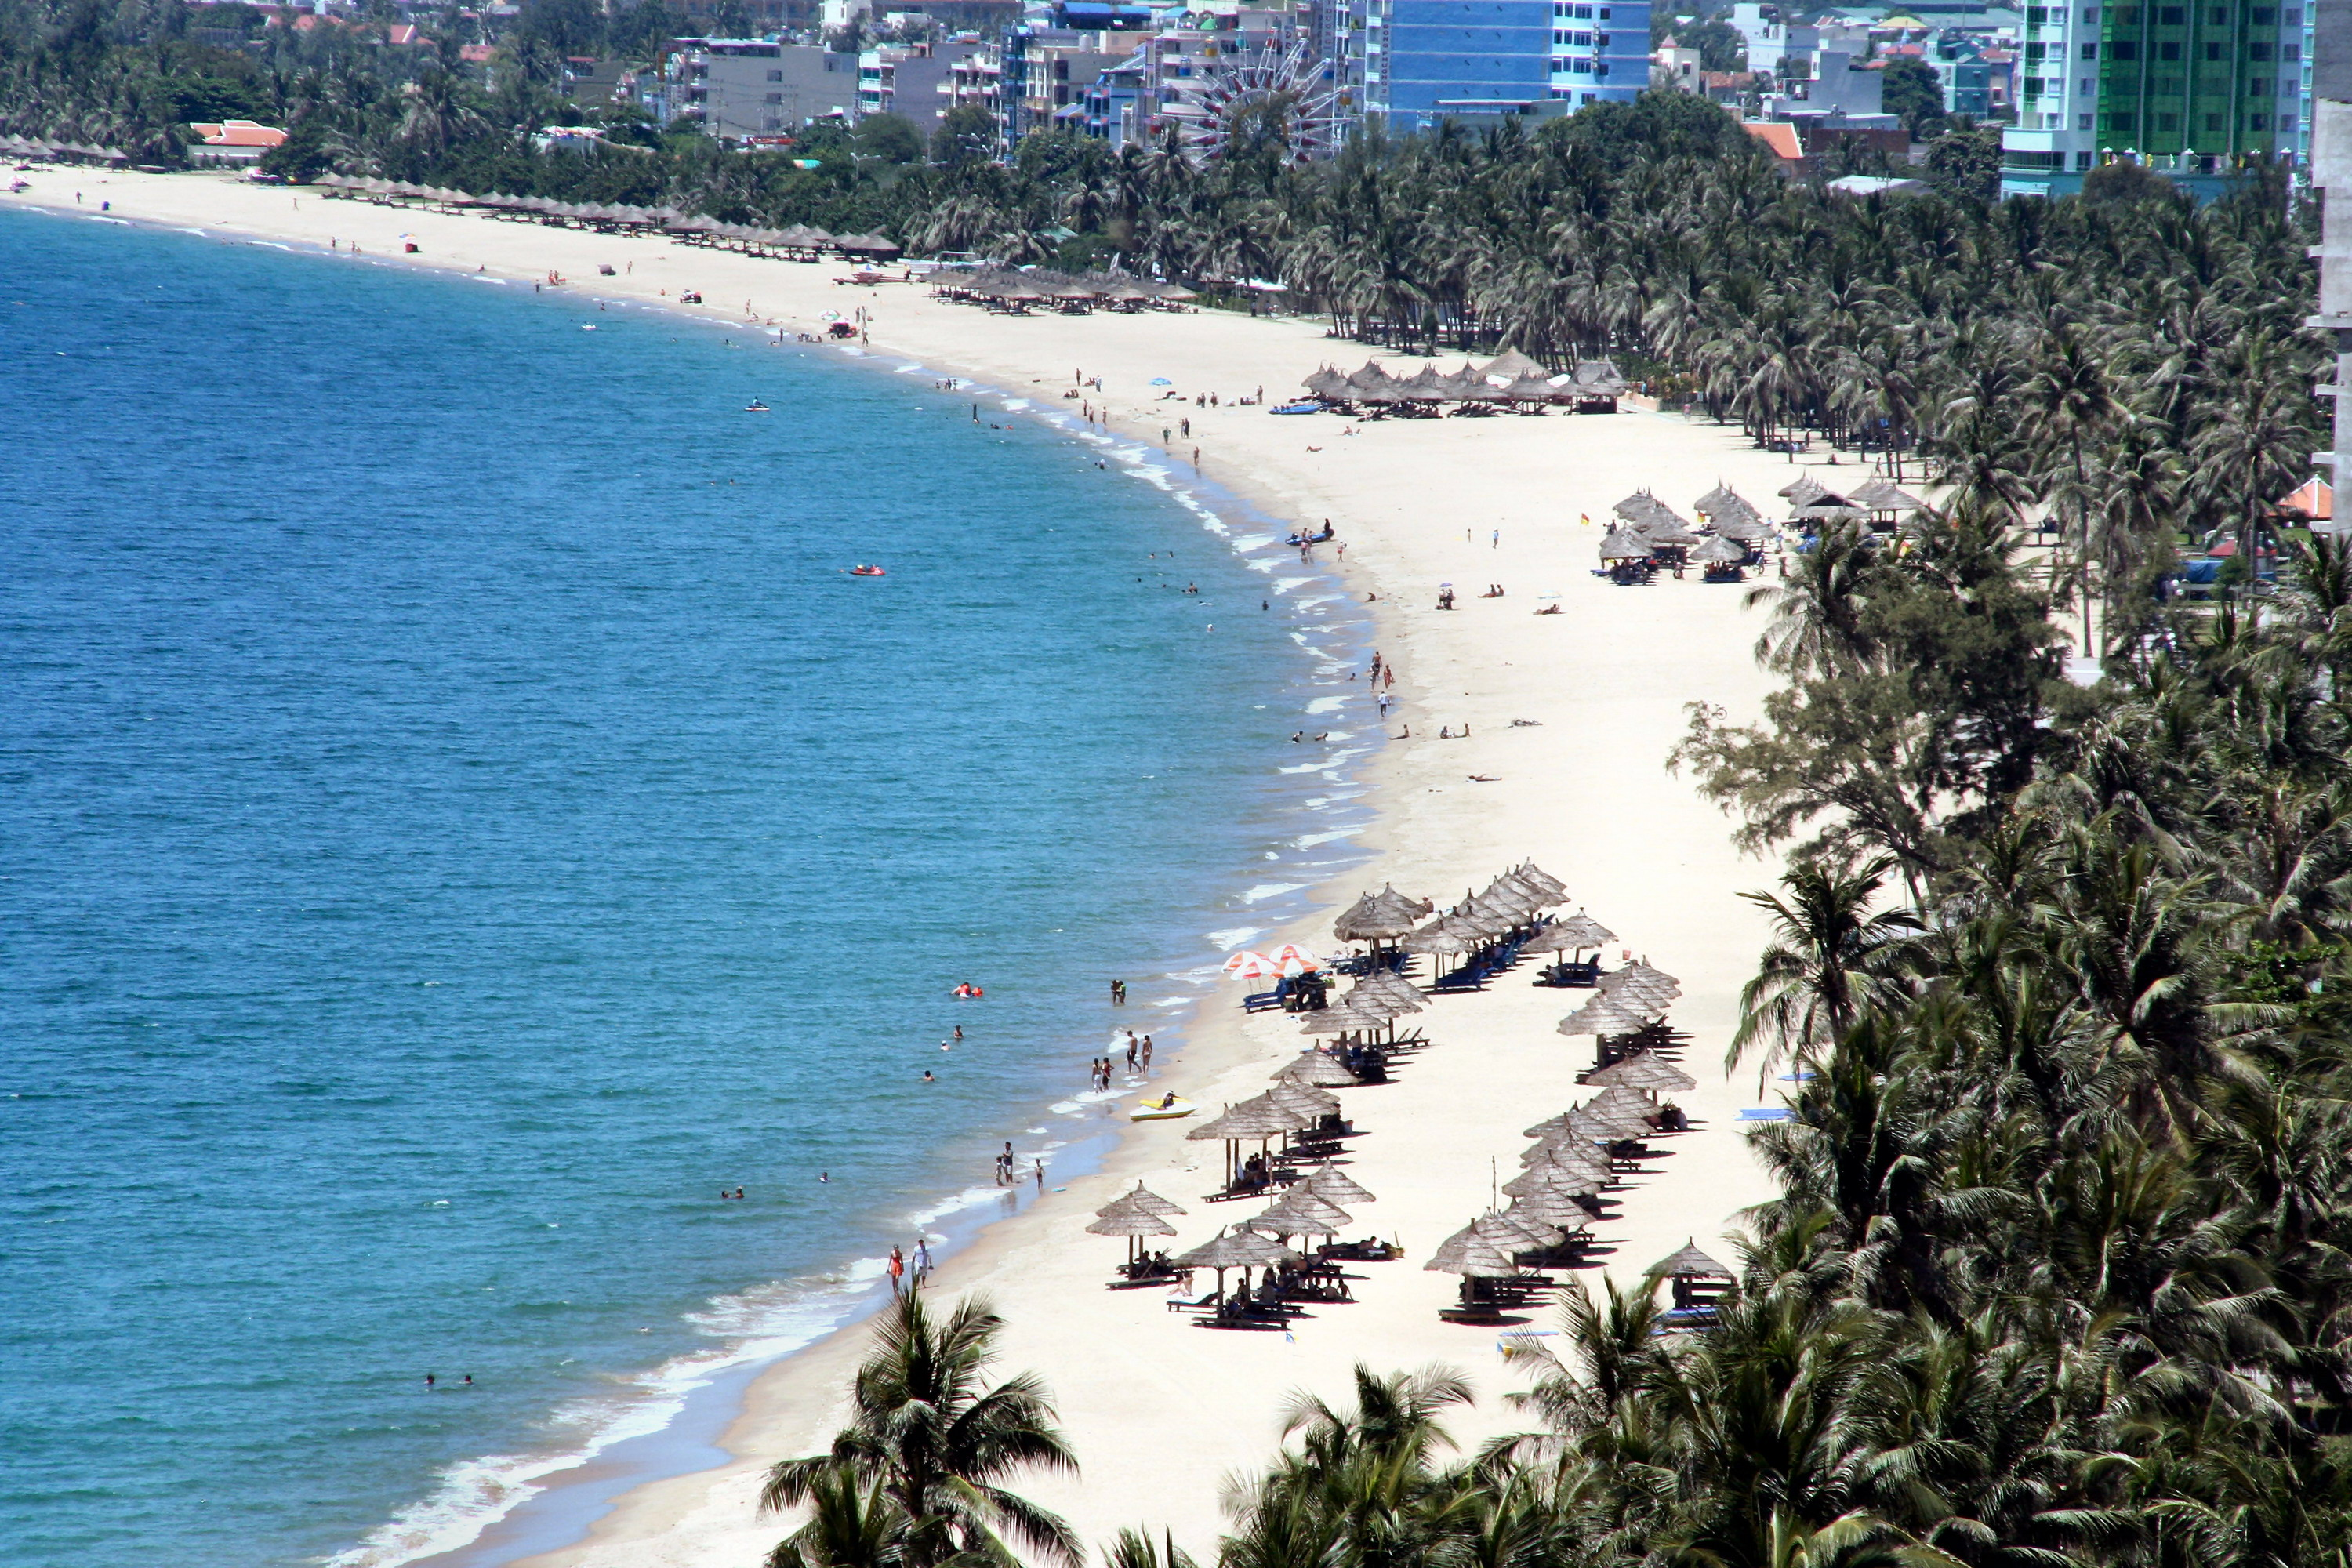 Nha Trang beach (Khanh Hoa Province, Middle of Vietnam) - Photo: Internet